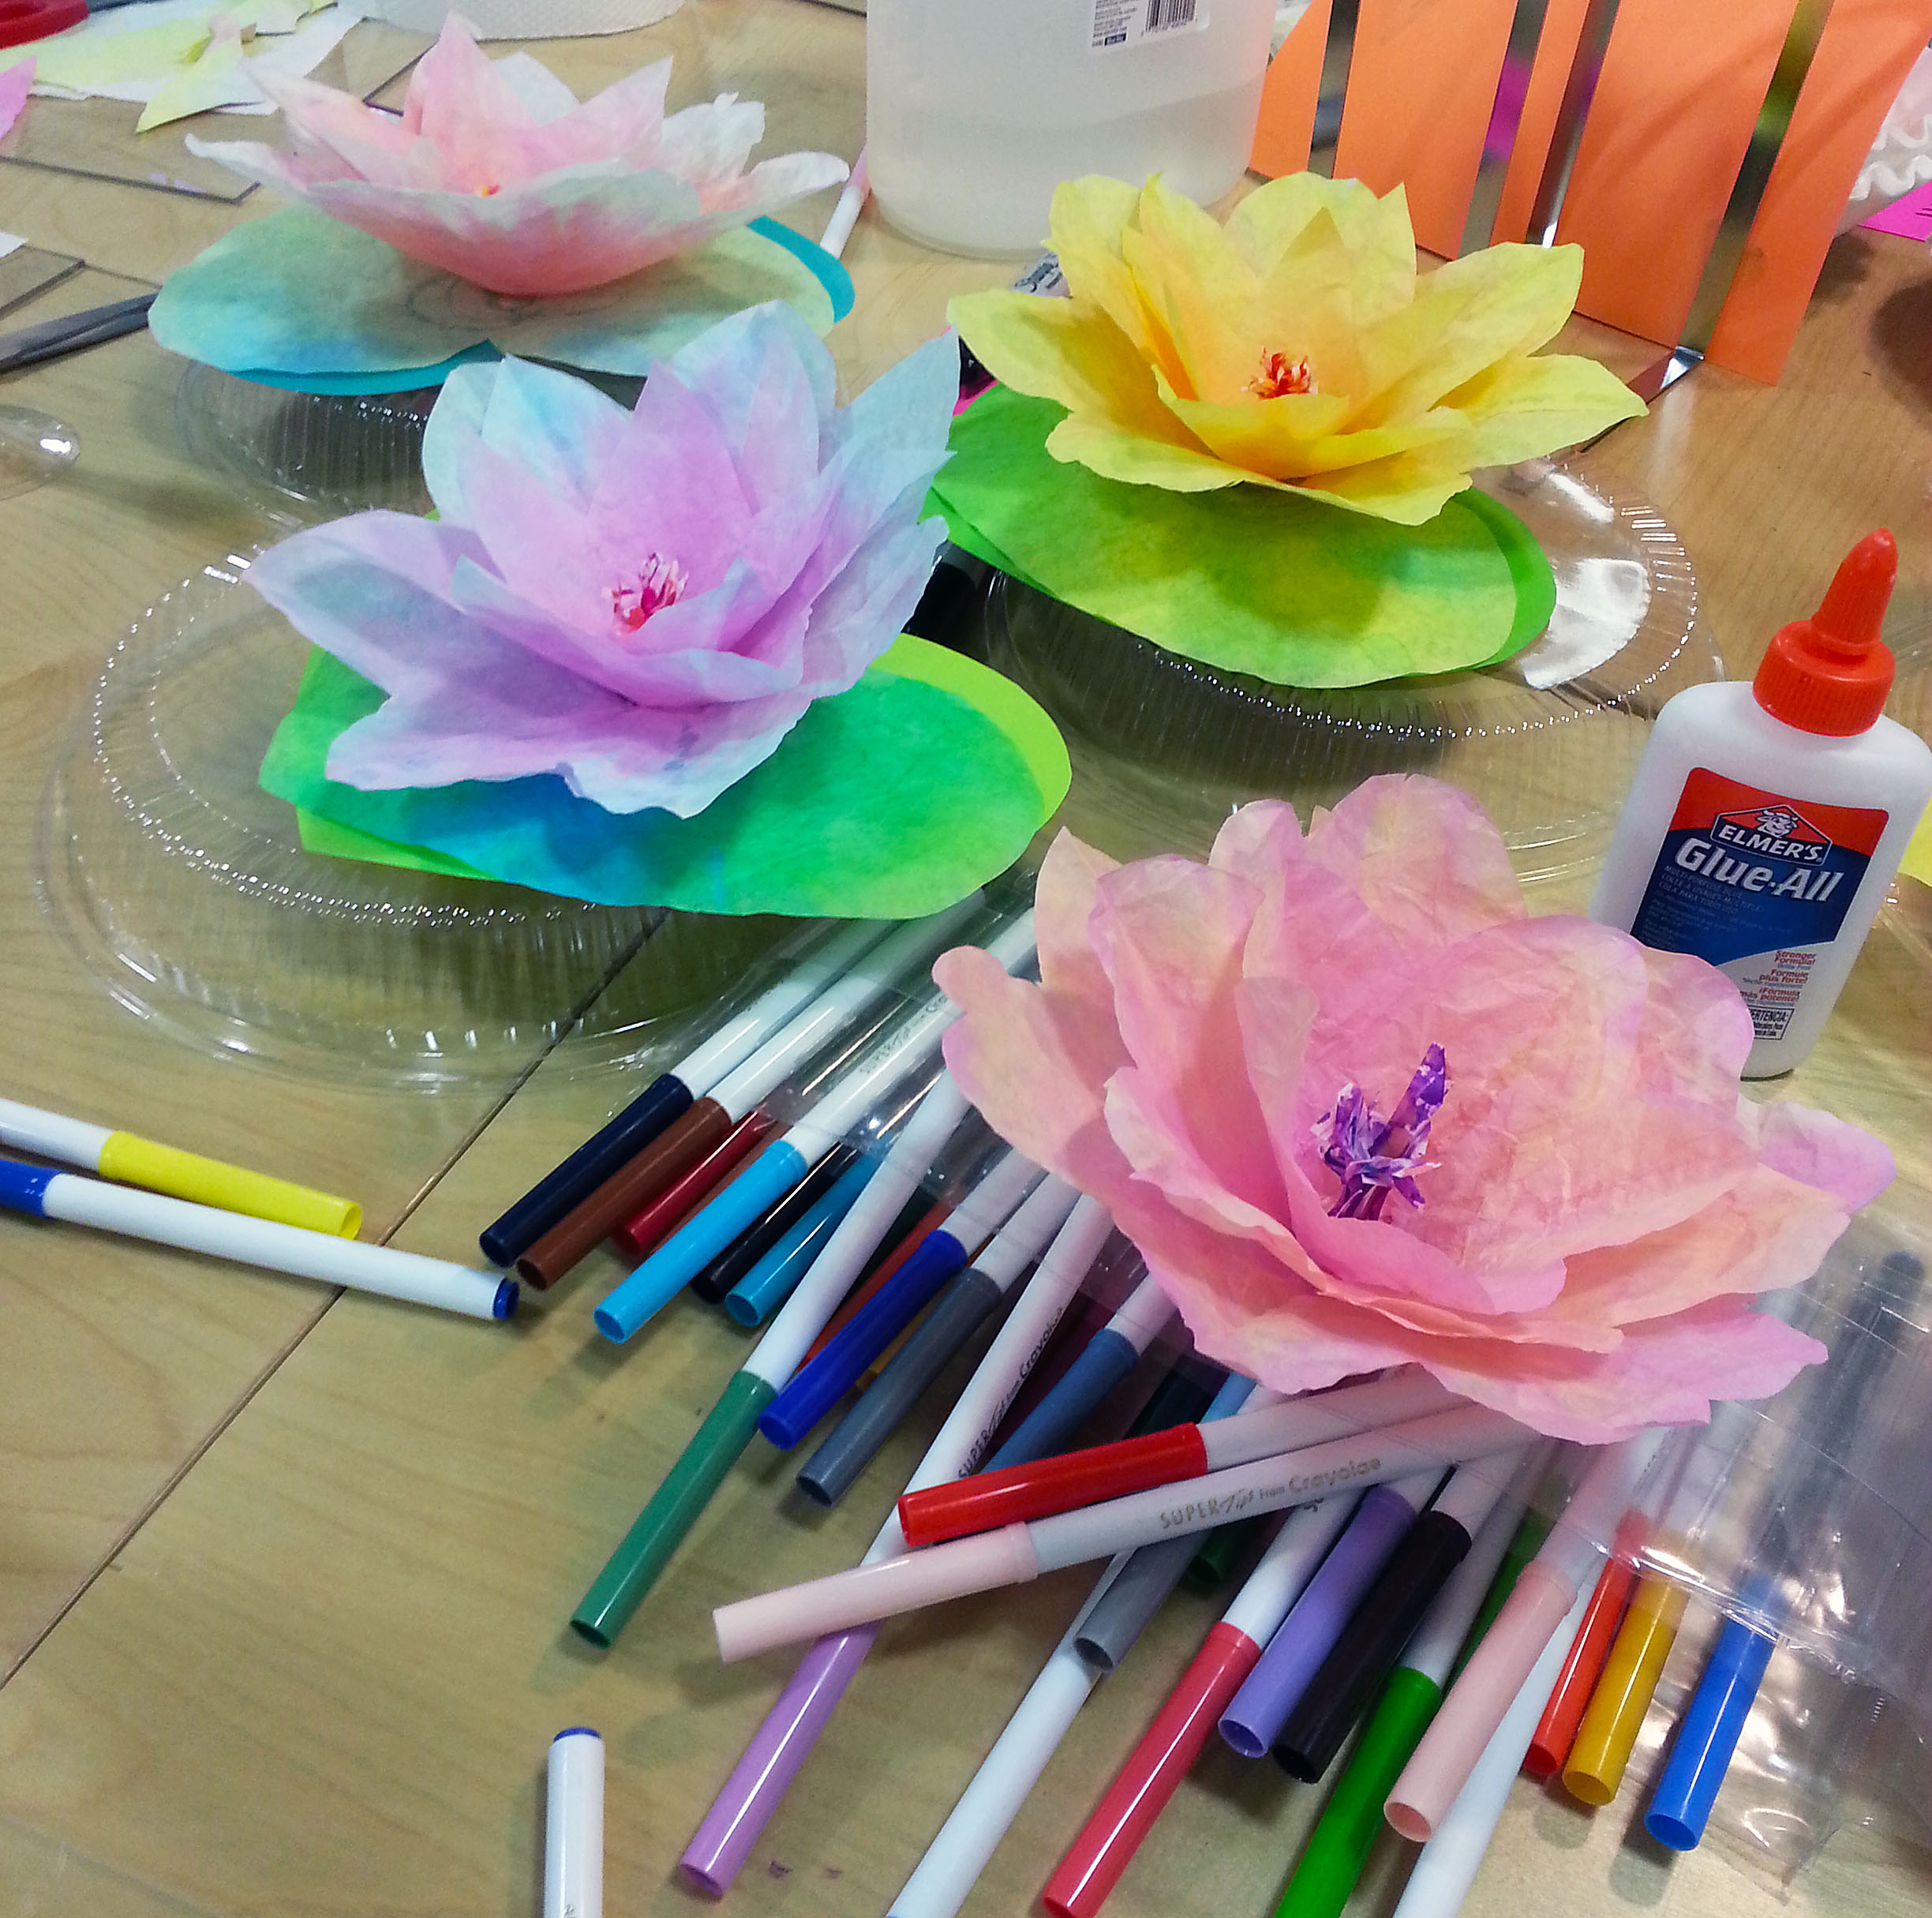 Coffee filters make great lilies. The view from the paper-lily station during the Valentine's Mix & Make on Thursday. (Emi Kolawole)